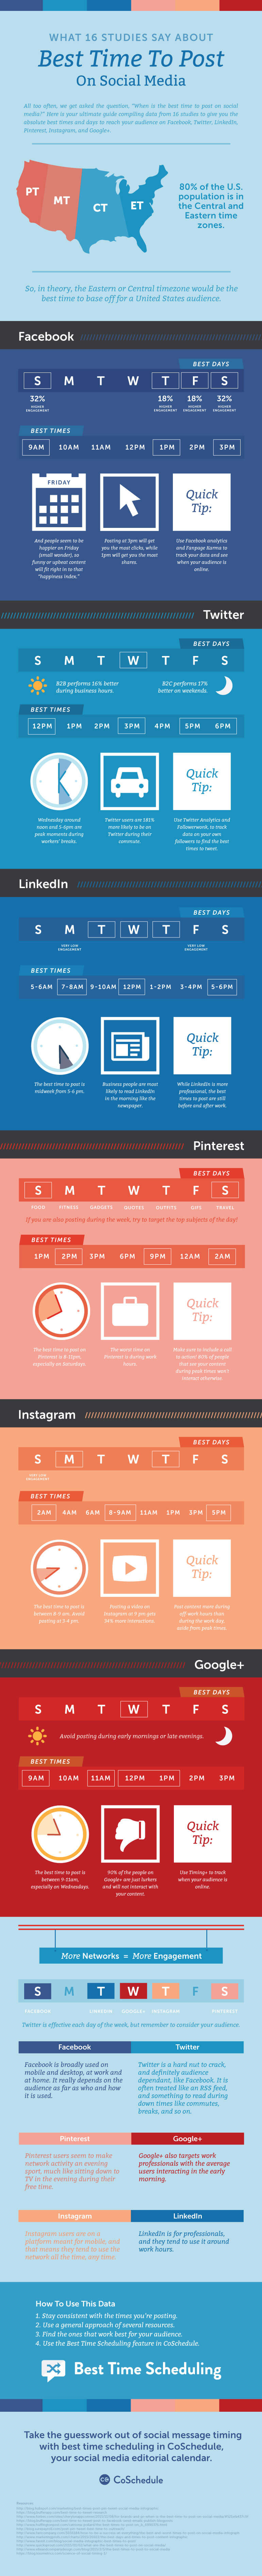 All the best times to post to social media, by network